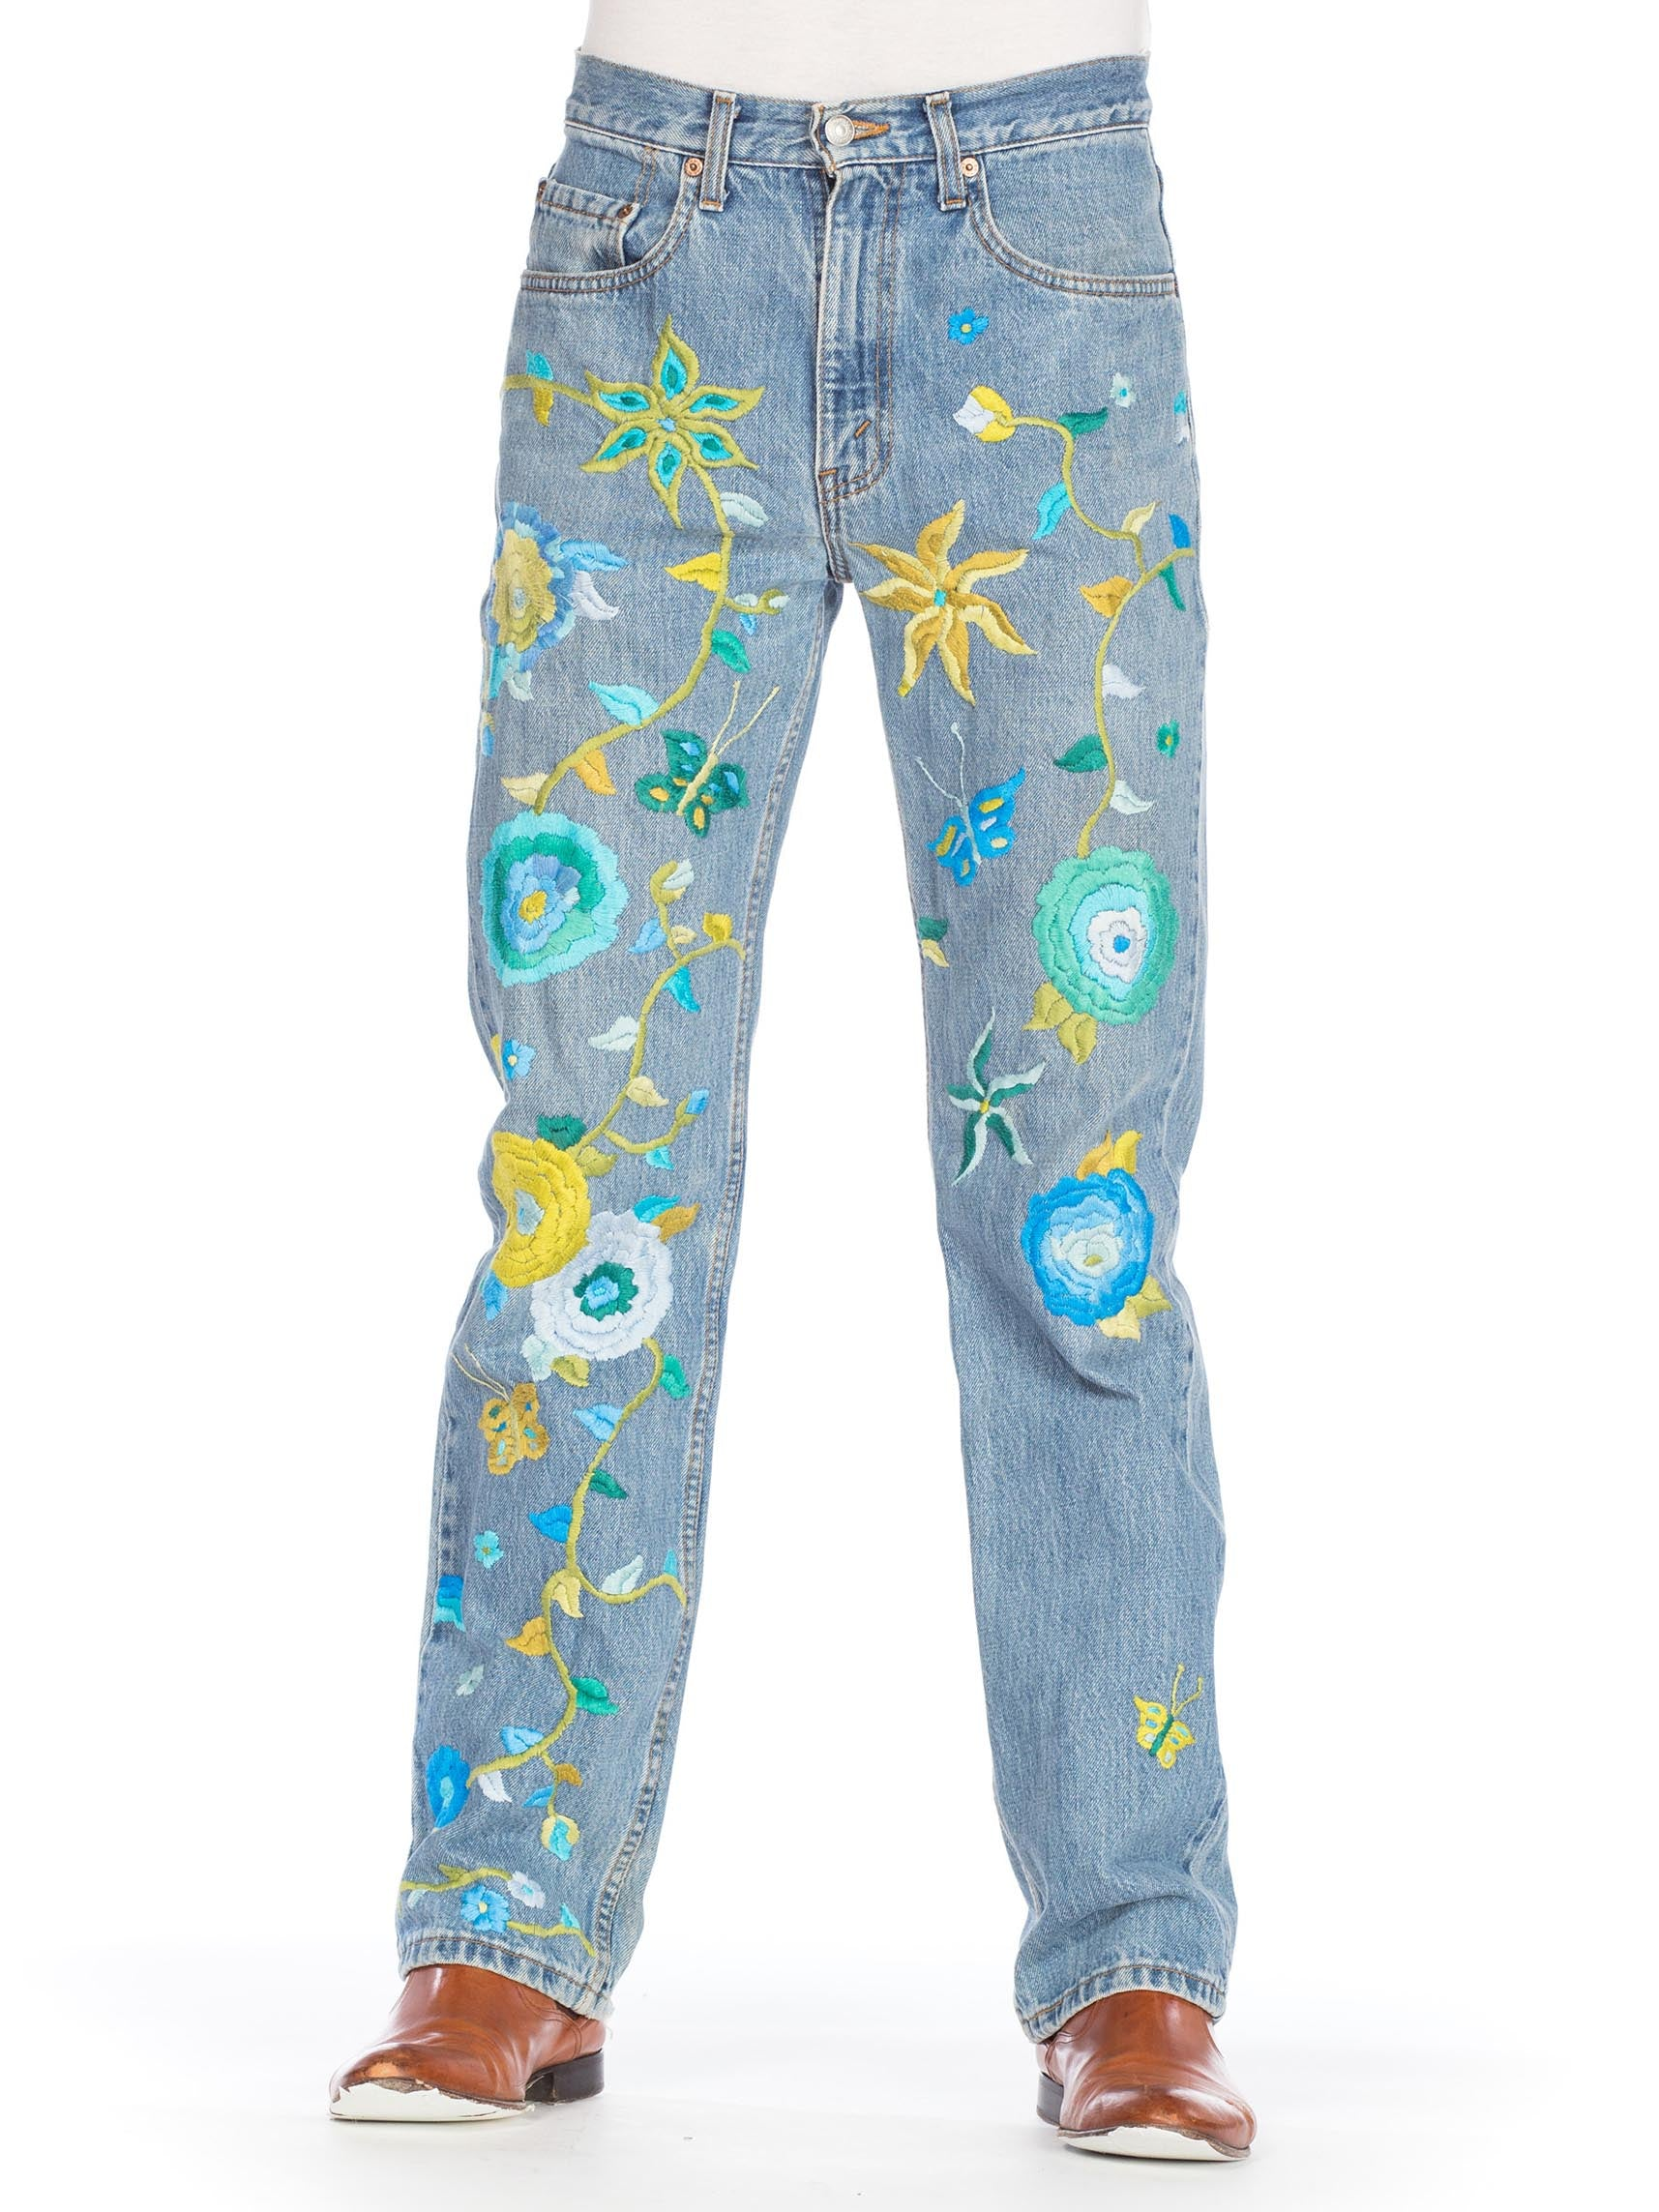 1990S LEVIS Blue  & Yellow Men's Hippie Boho Floral Embroidered Jeans